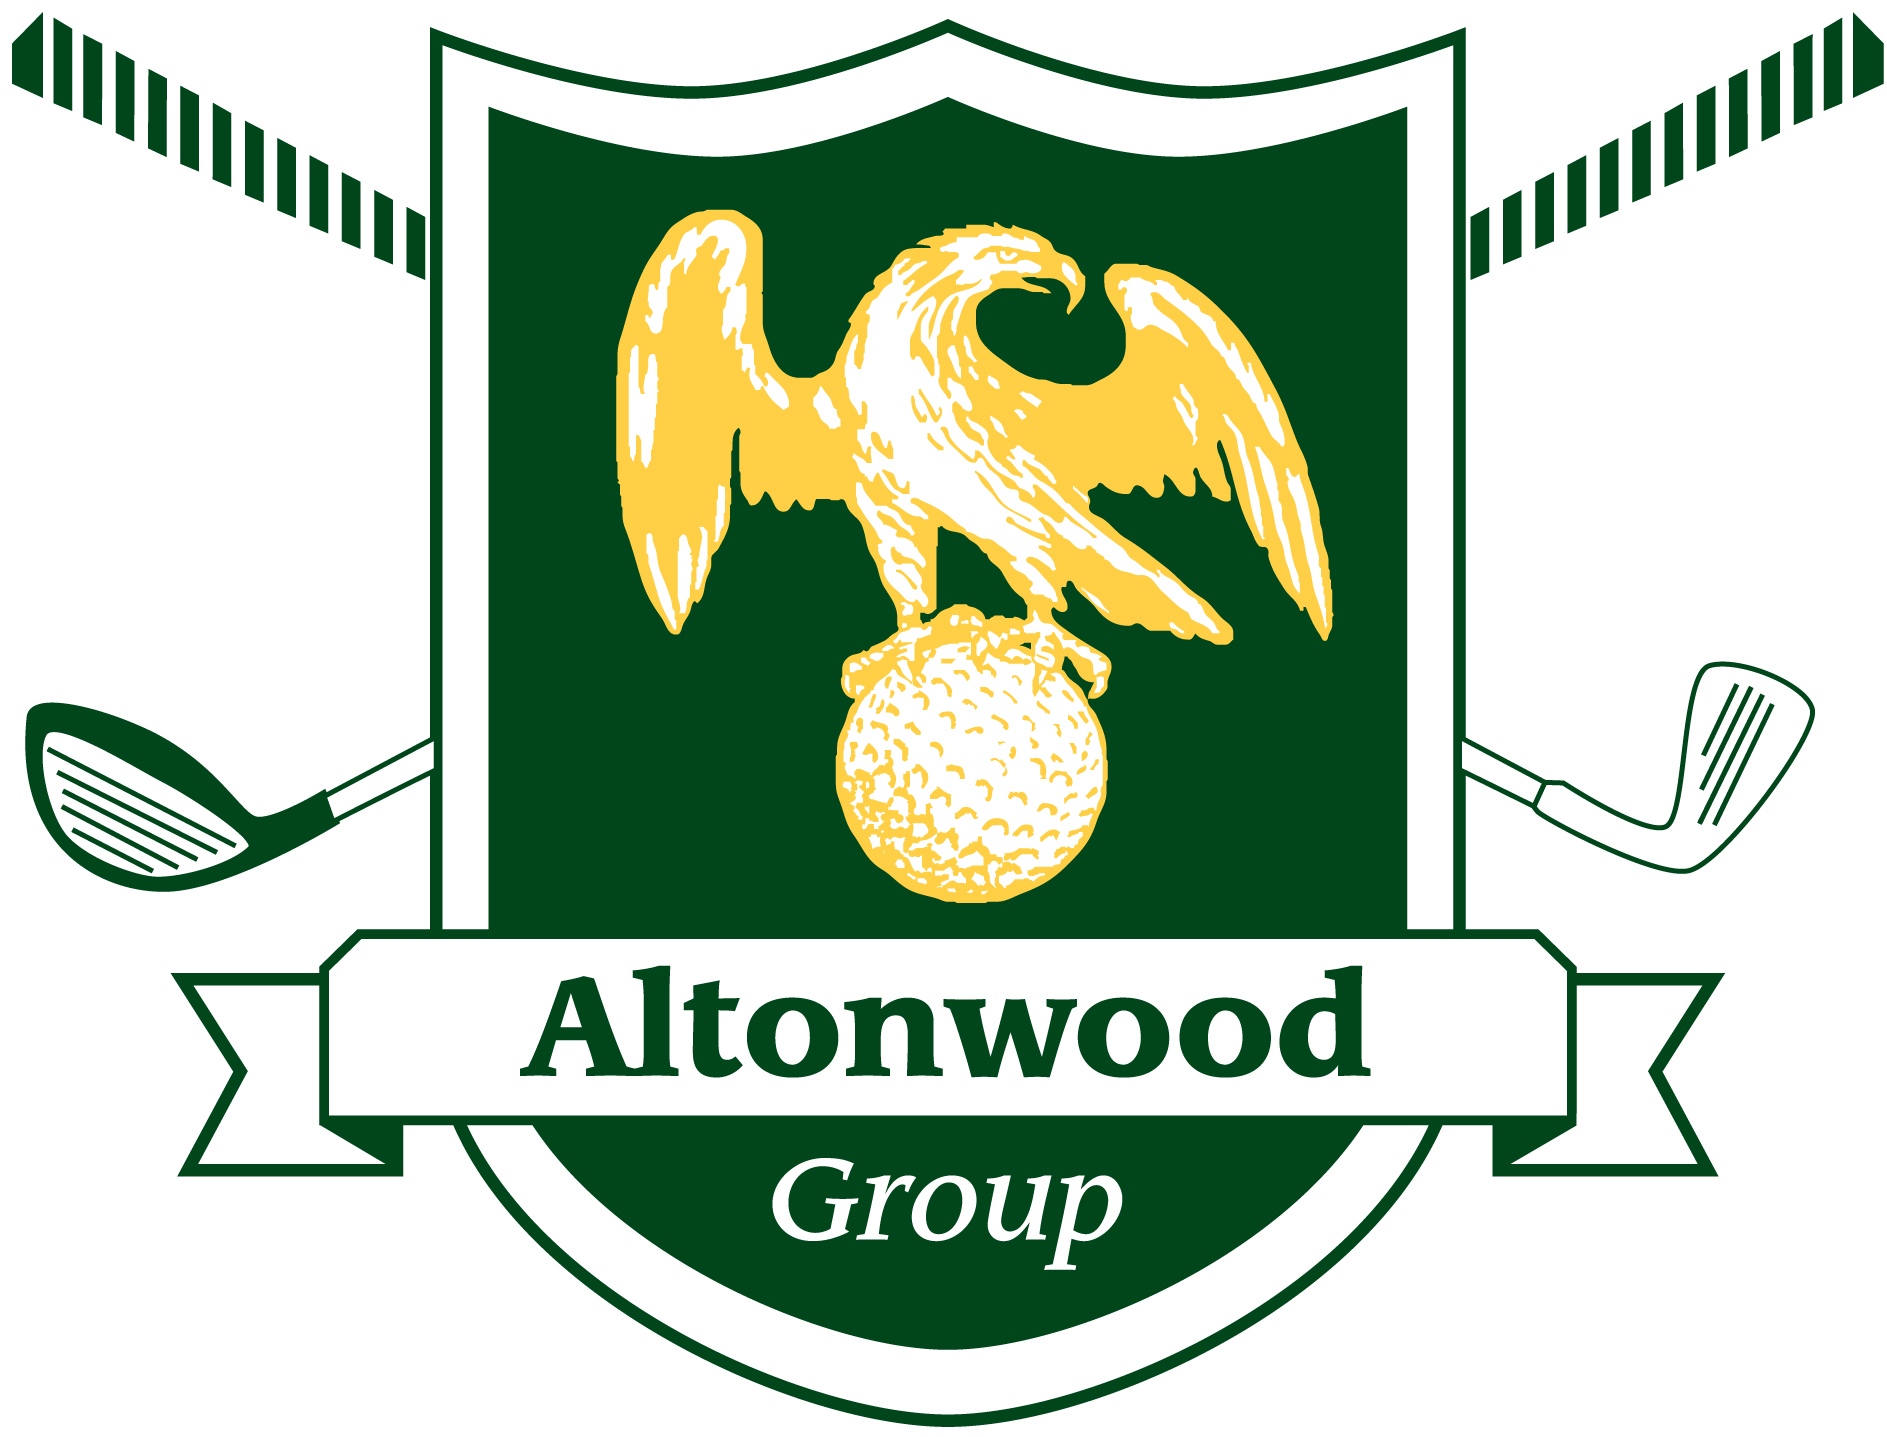 The Altonwood Group